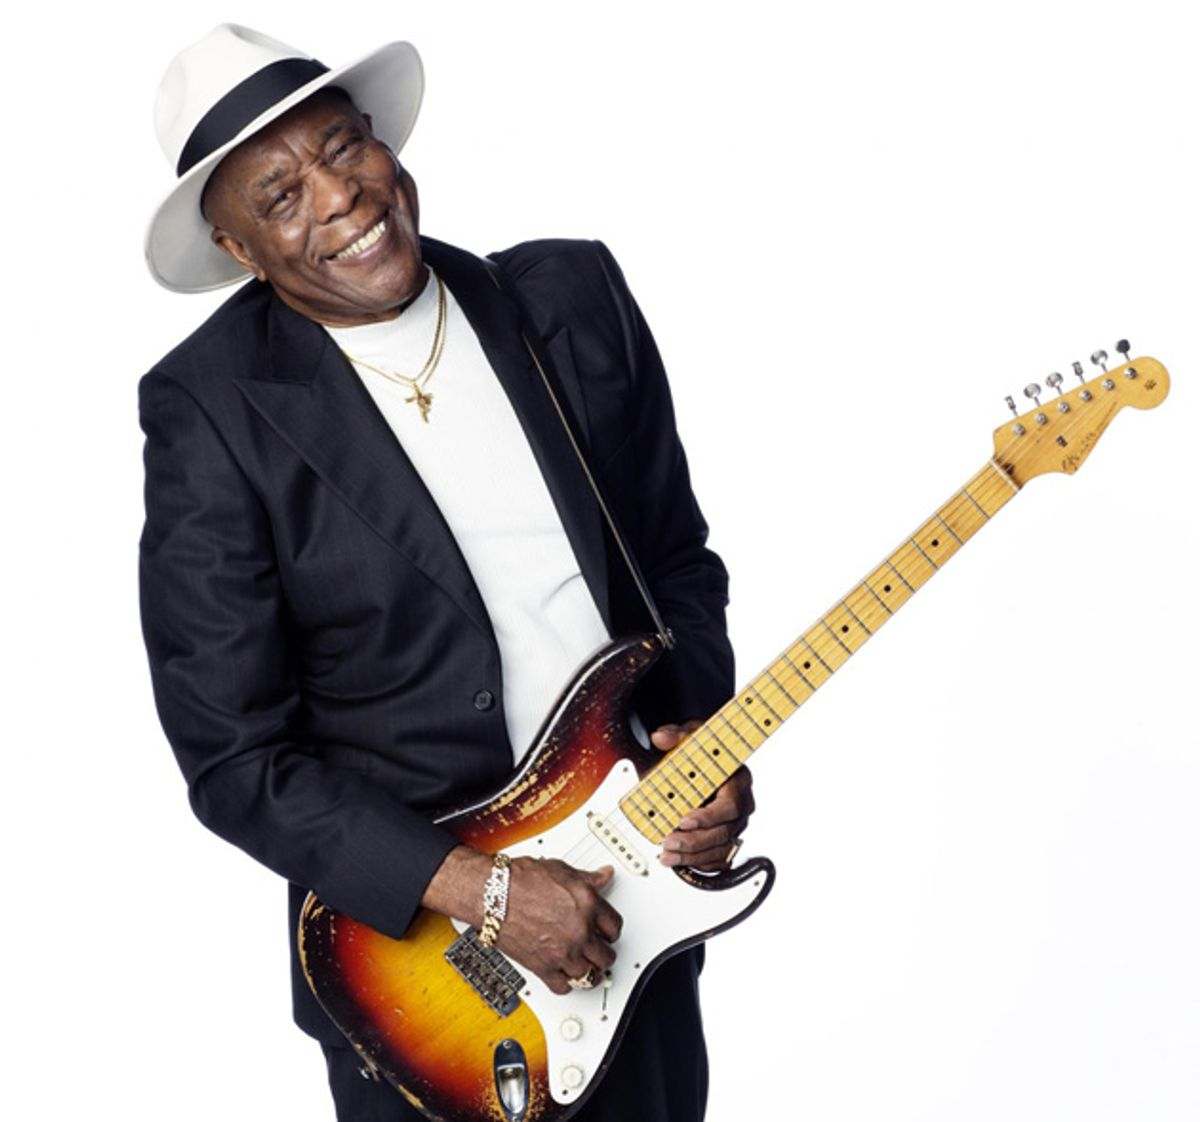 Buddy Guy's Rhythm and Blues, Old and New